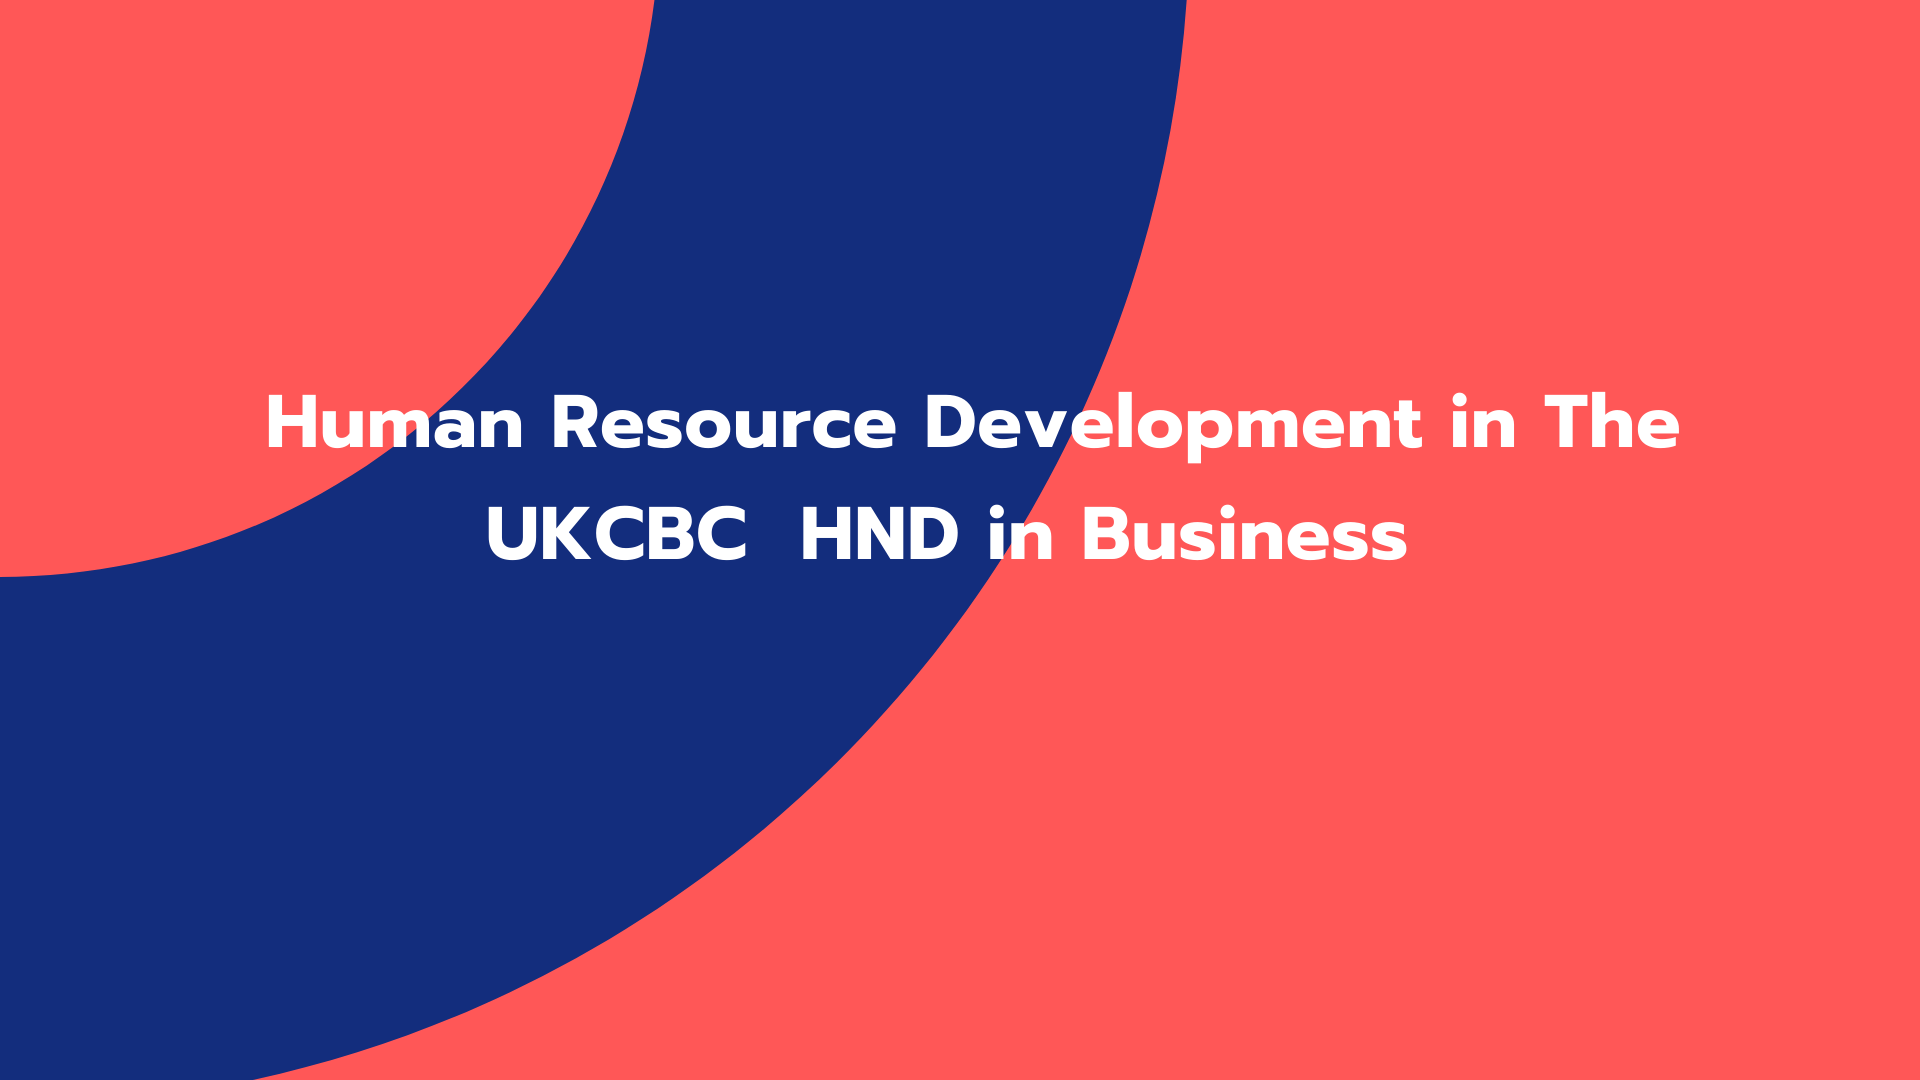 Human Resource Development in The UKCBC HND in Business